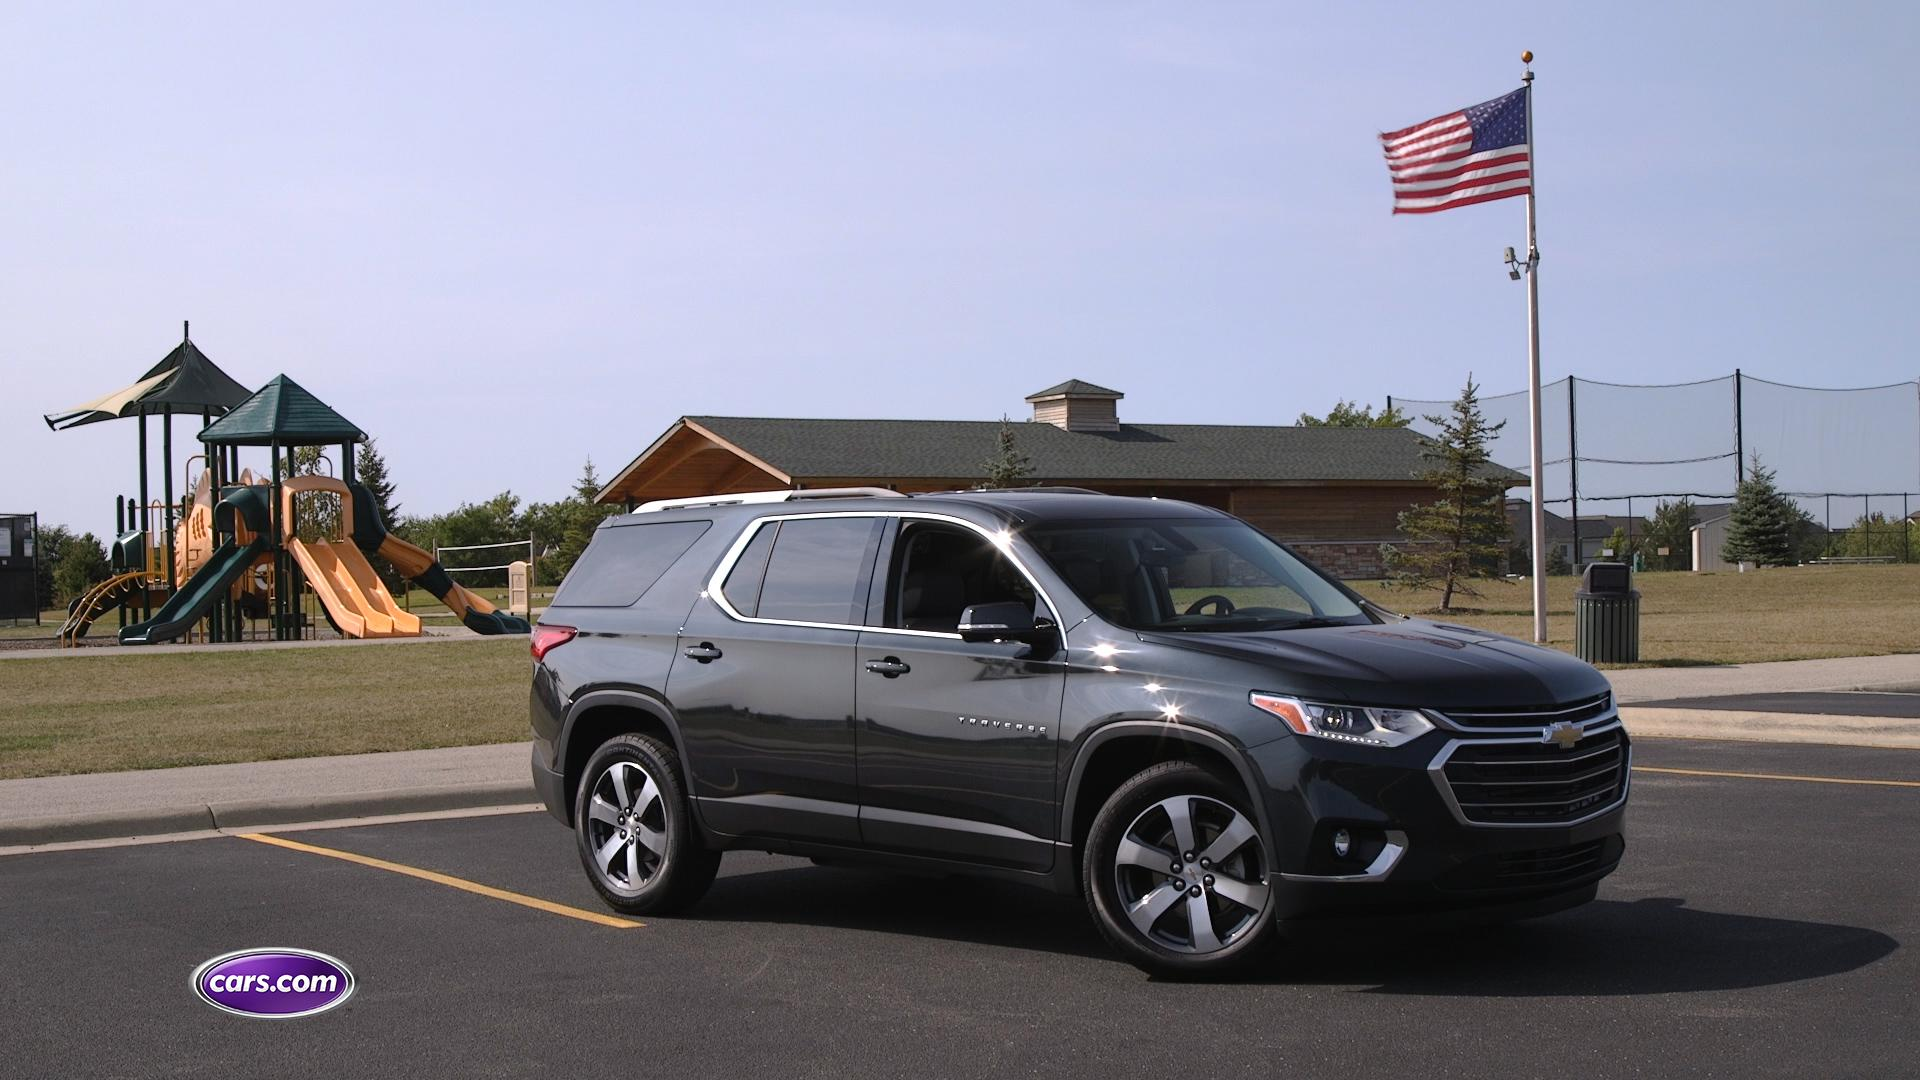 Best Family Vehicle >> 2018 Chevrolet Traverse Overview | Cars.com